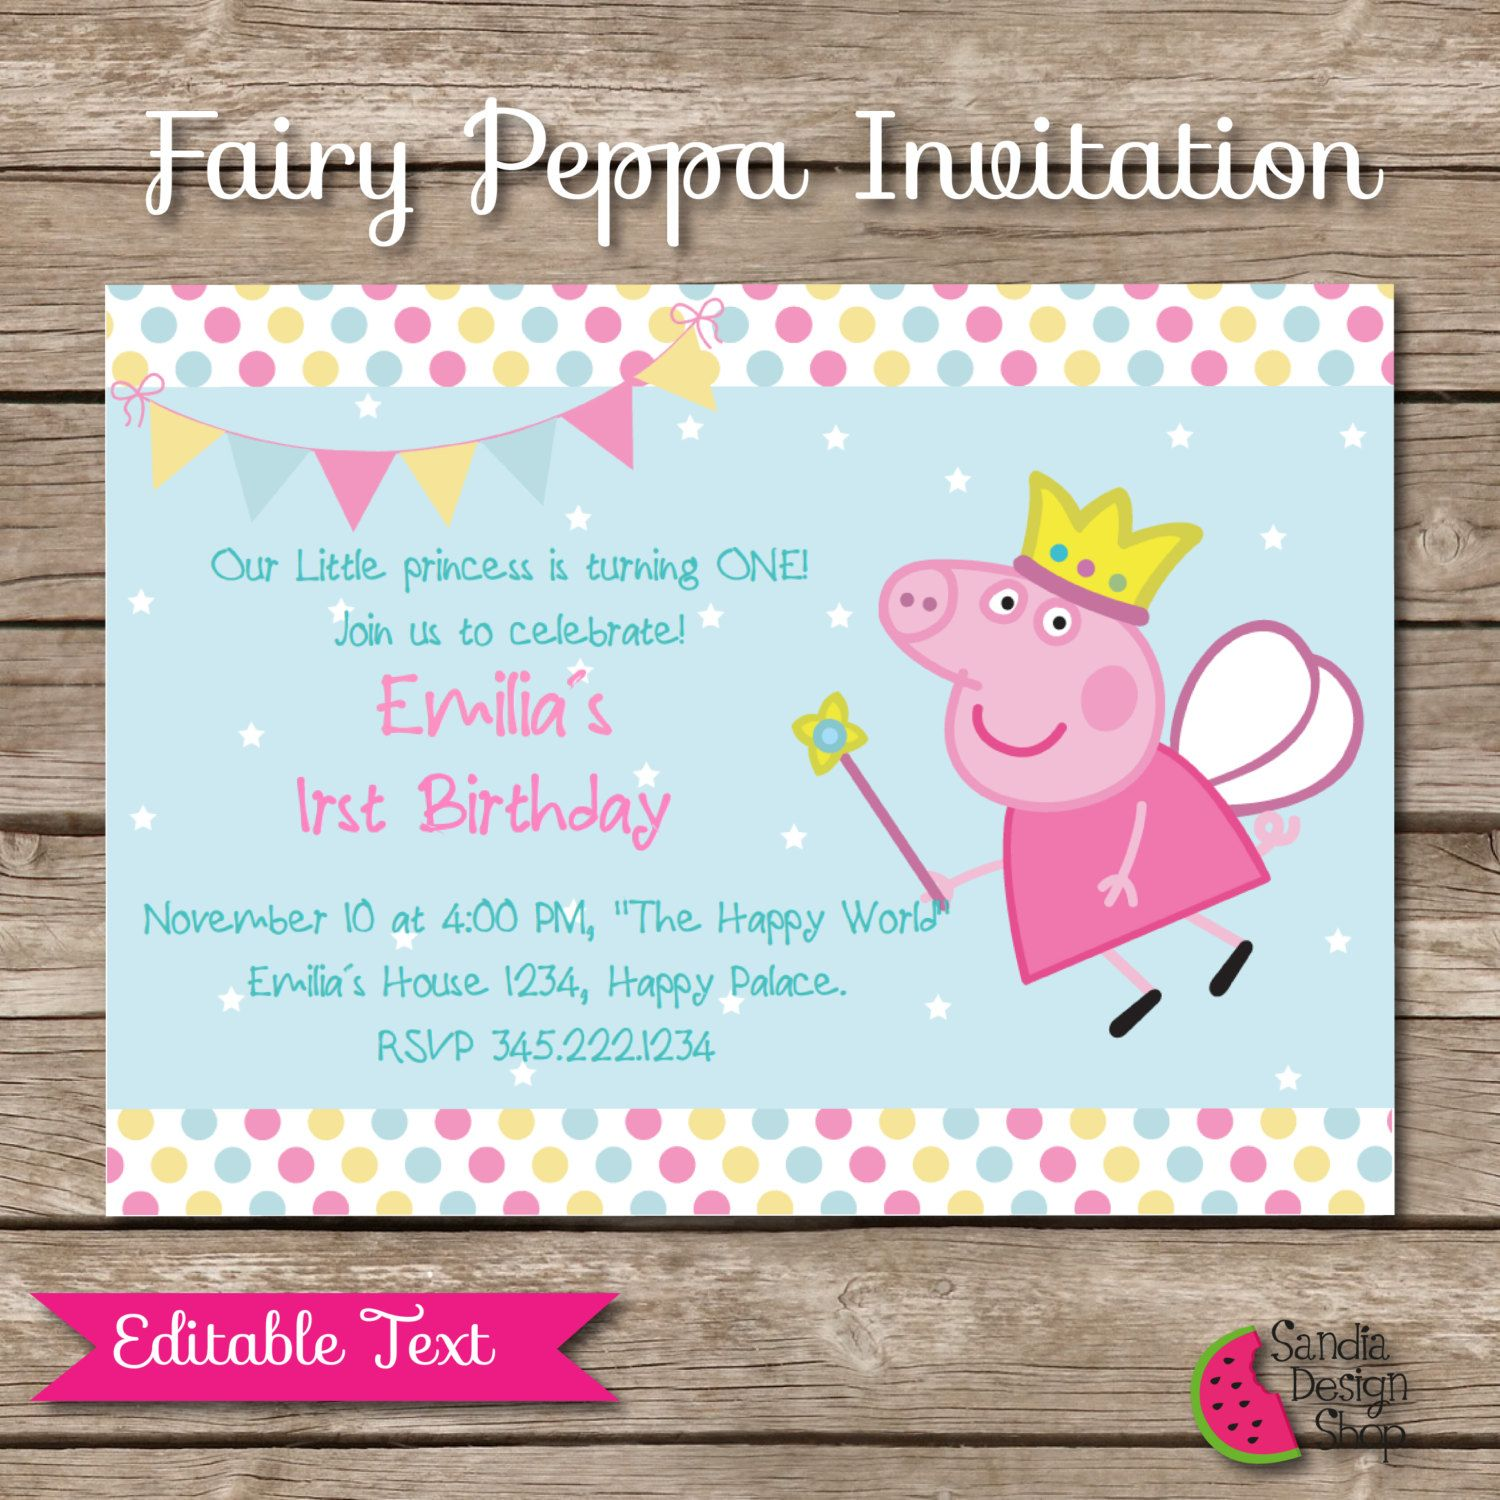 Peppa pig printable birthday invitation editable text fairy peppa peppa pig printable birthday invitation editable text fairy peppa invitation pepa la cerdita stopboris